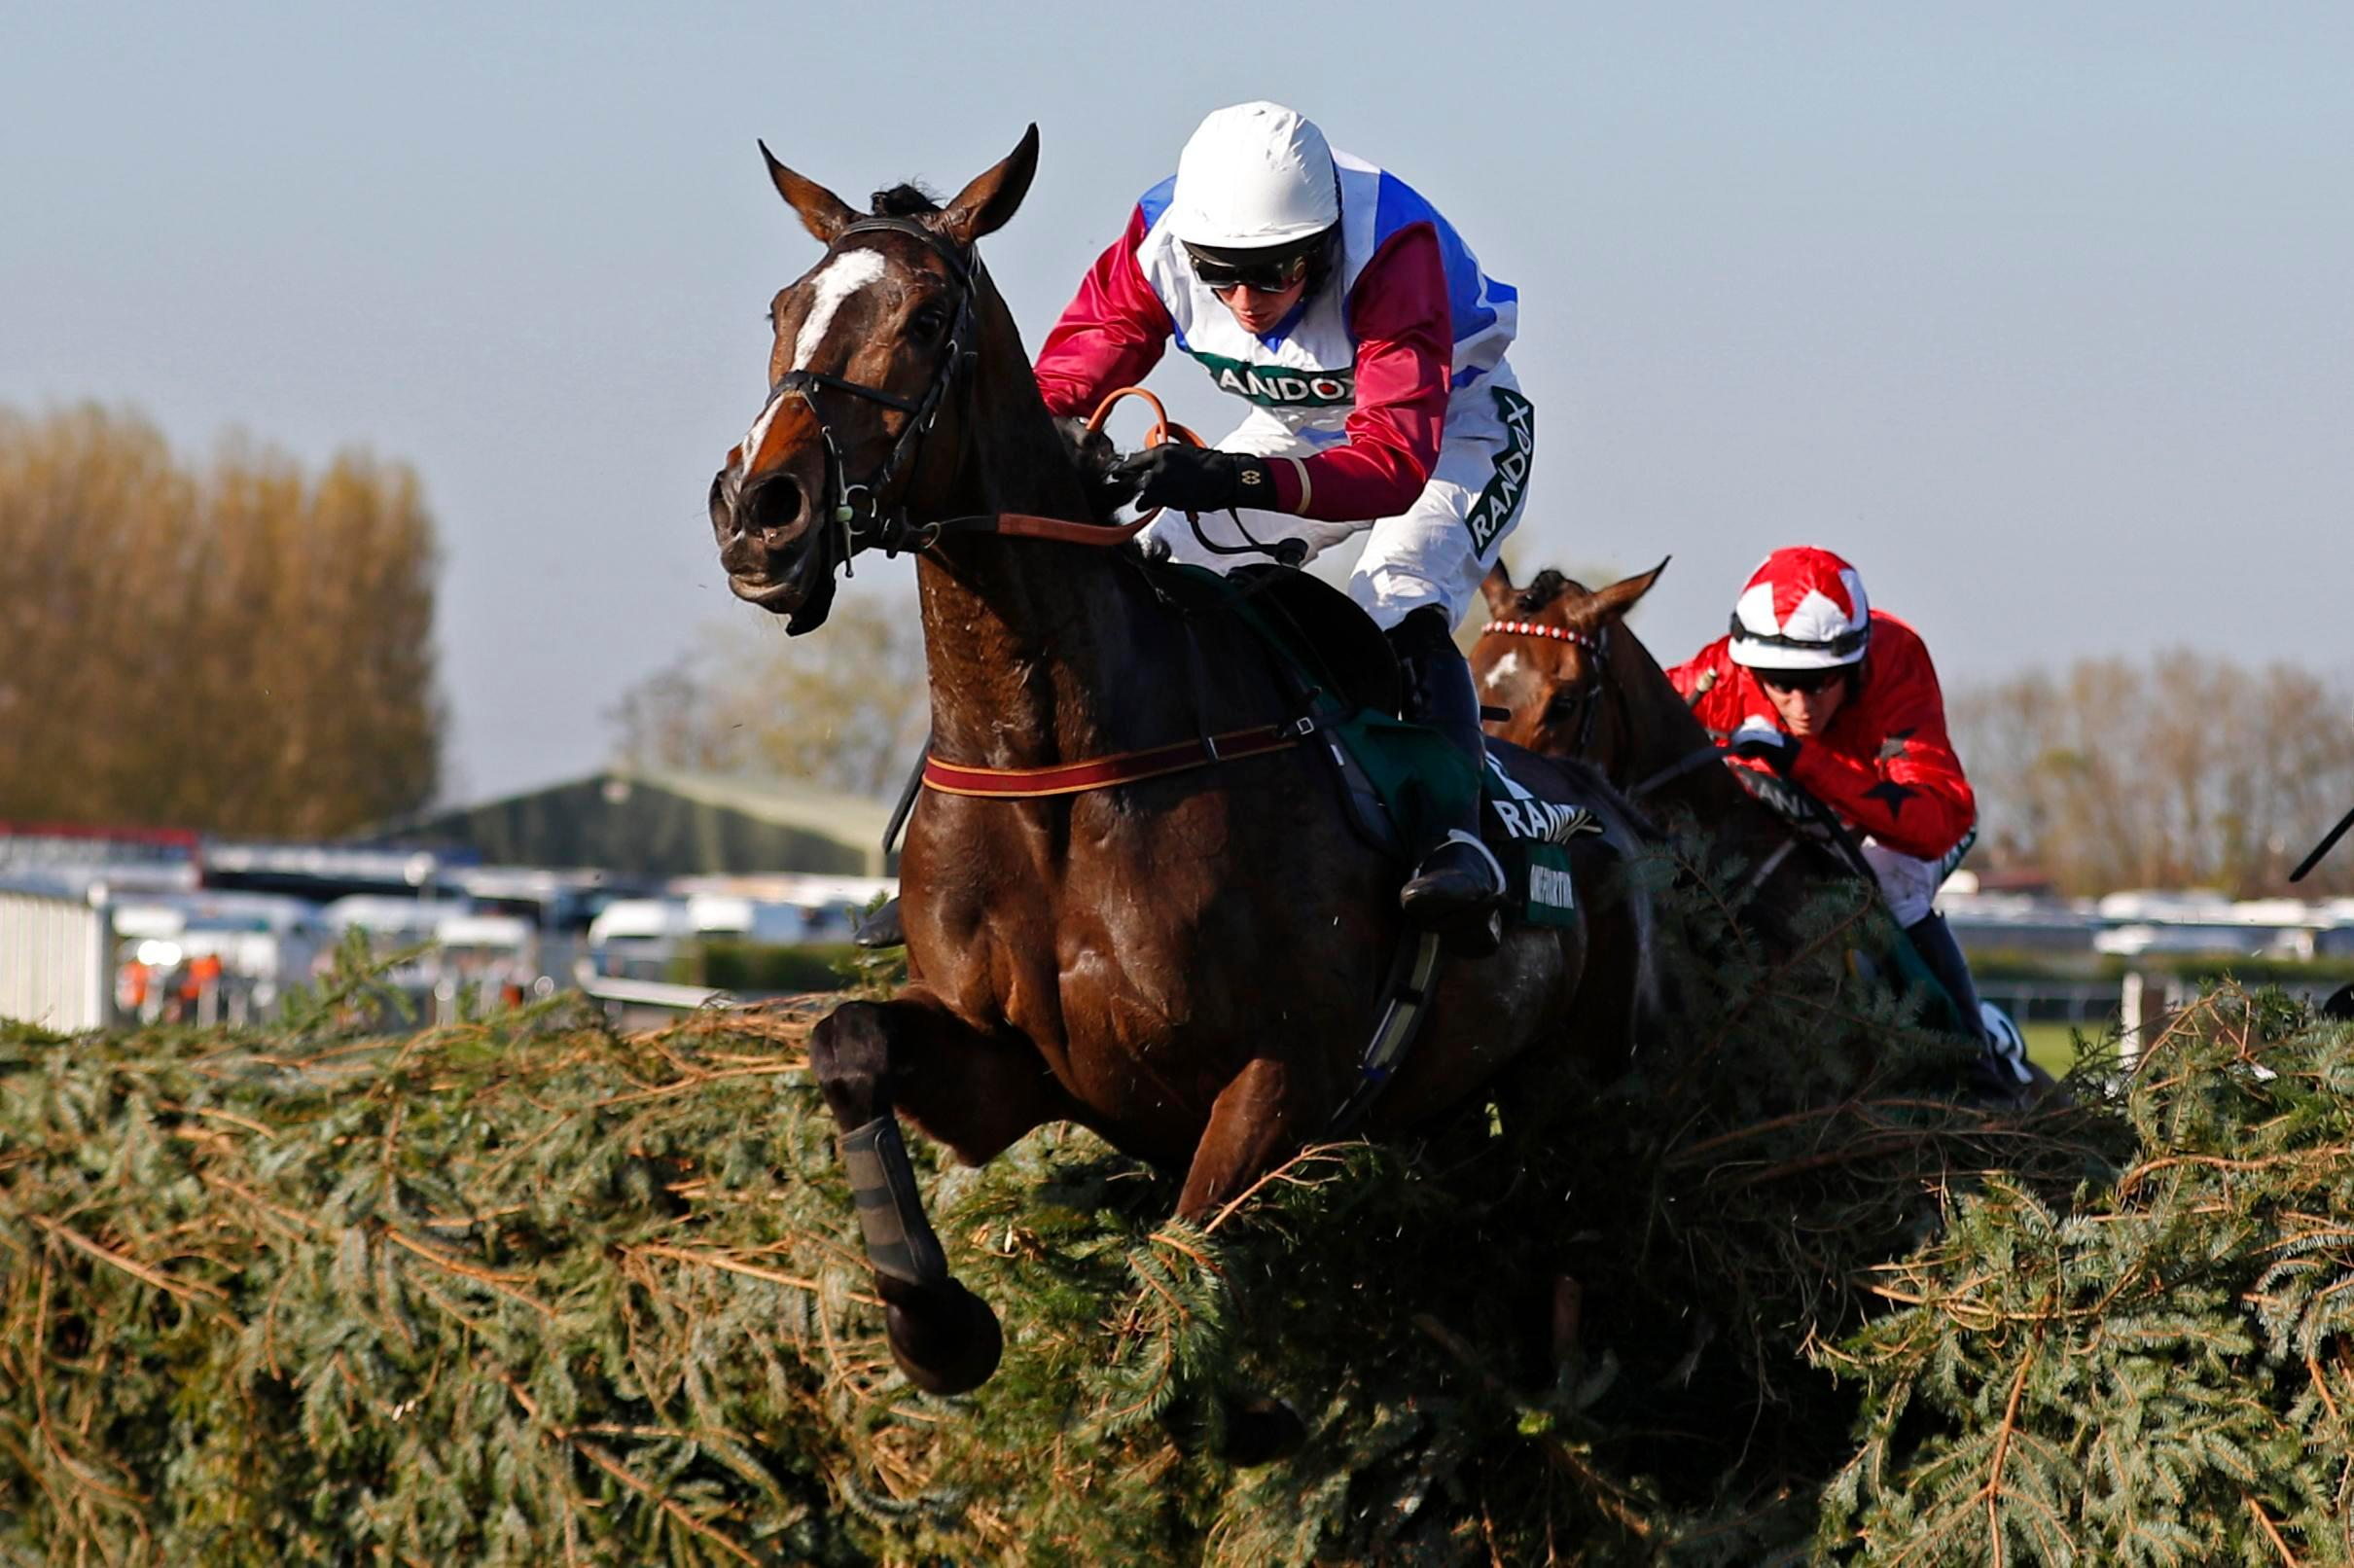 Former Grand National winner One For Arthur has Haydock and Wetherby options after Aintree unseat